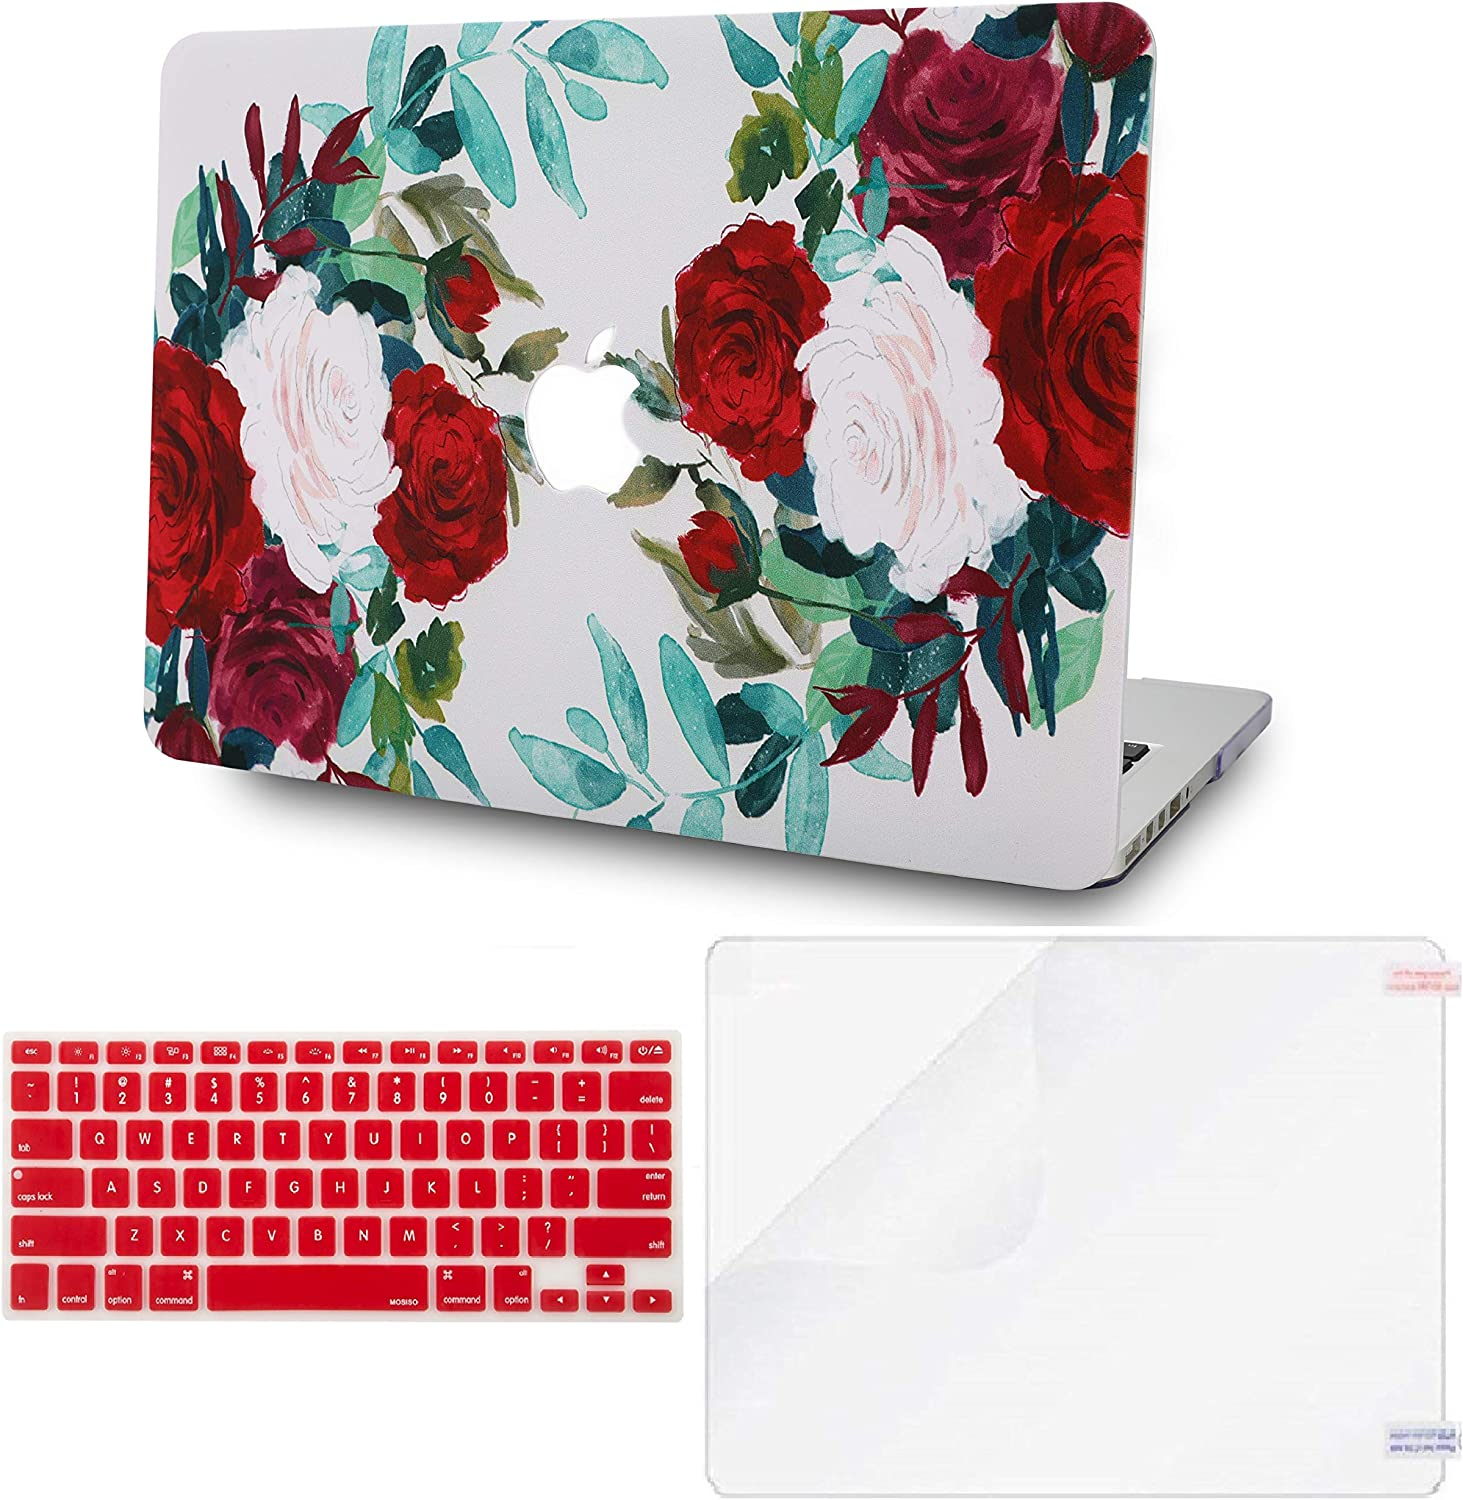 LuvCase 3 in 1 Laptop Case Compatible with Old MacBook Pro 13